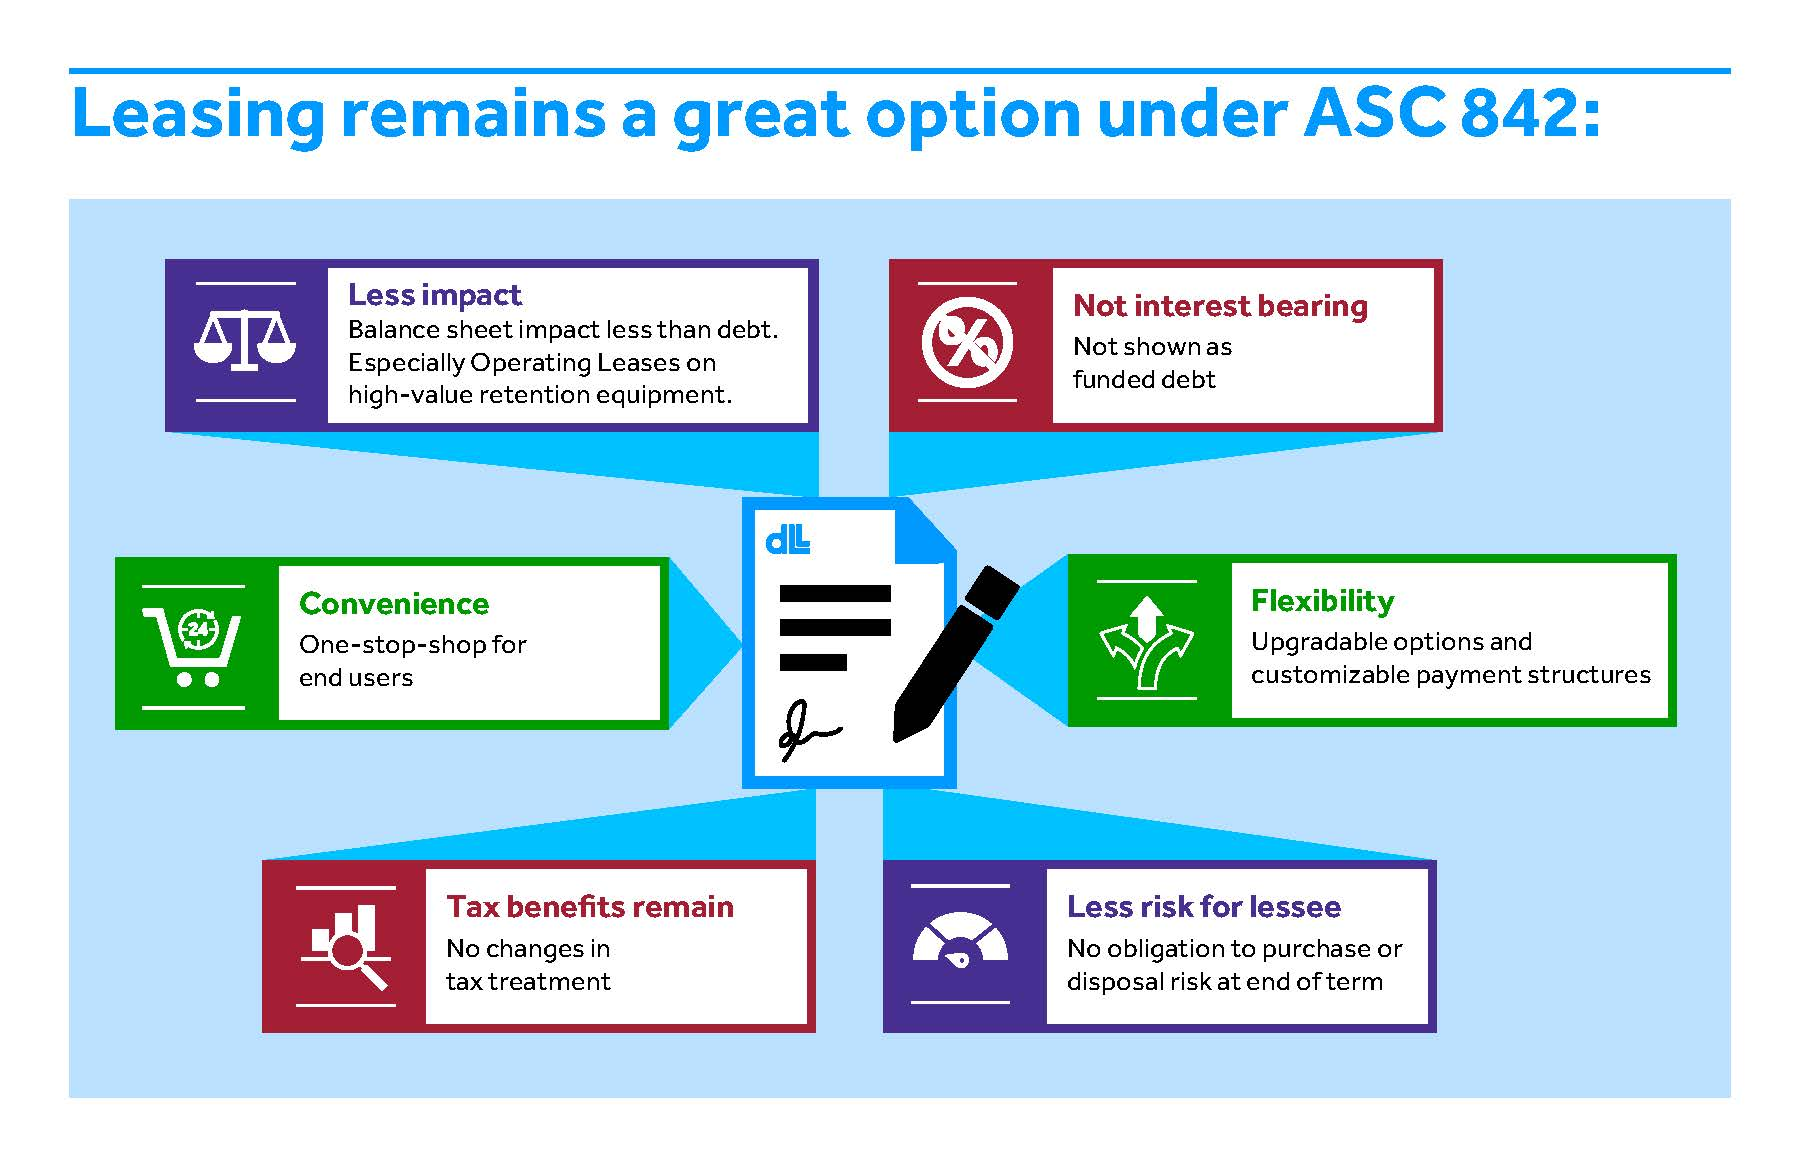 Leasing remains a great option under ASC 842